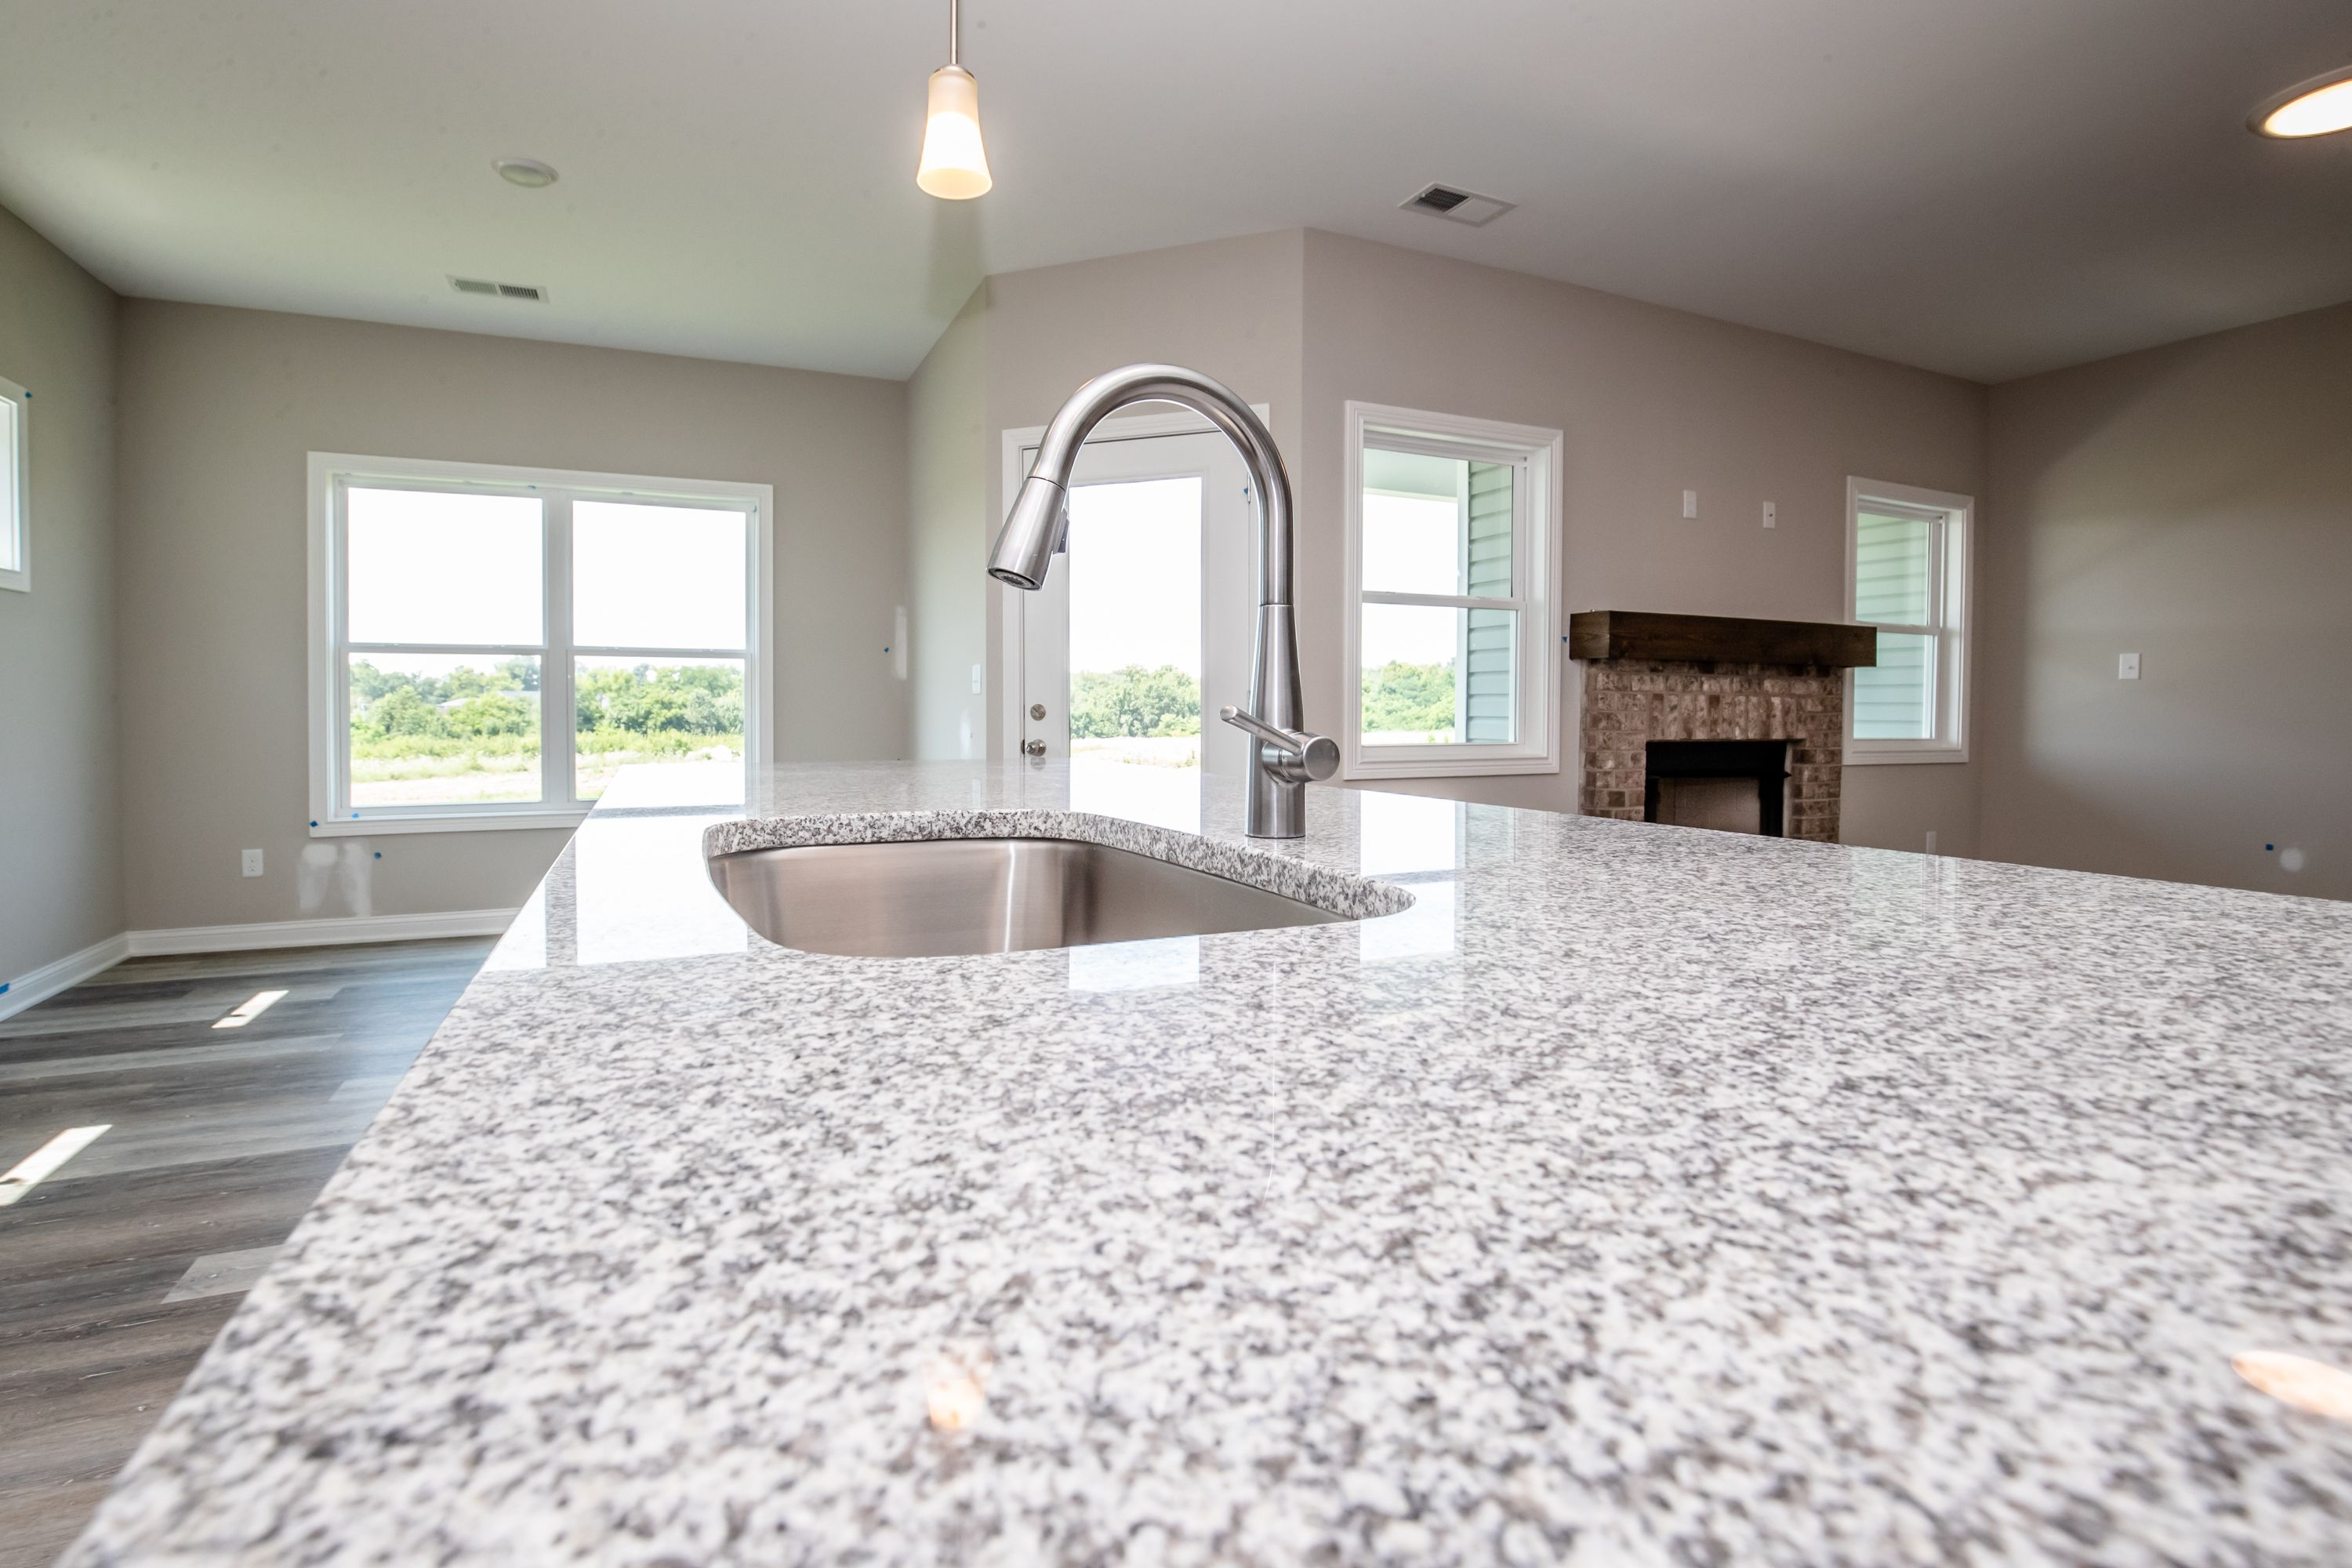 Kitchen featured in The Barbara By James Monroe Homes in Lexington, KY